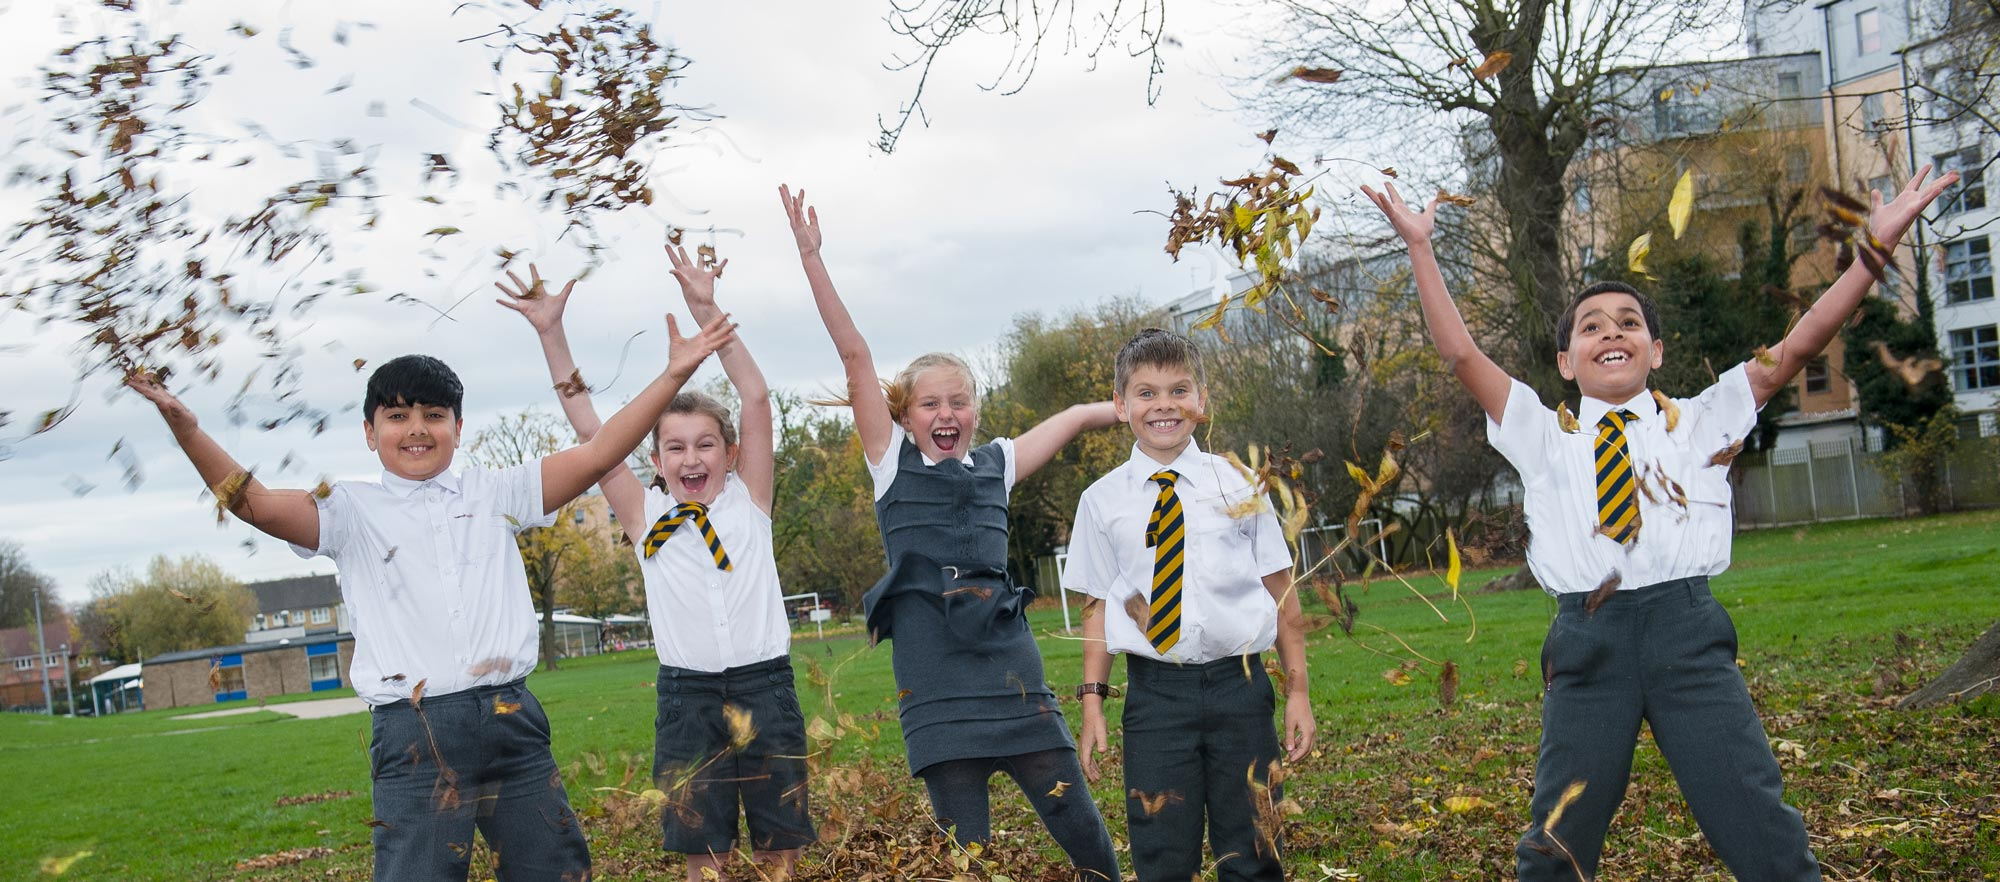 Children throwing autumn leaves in the air